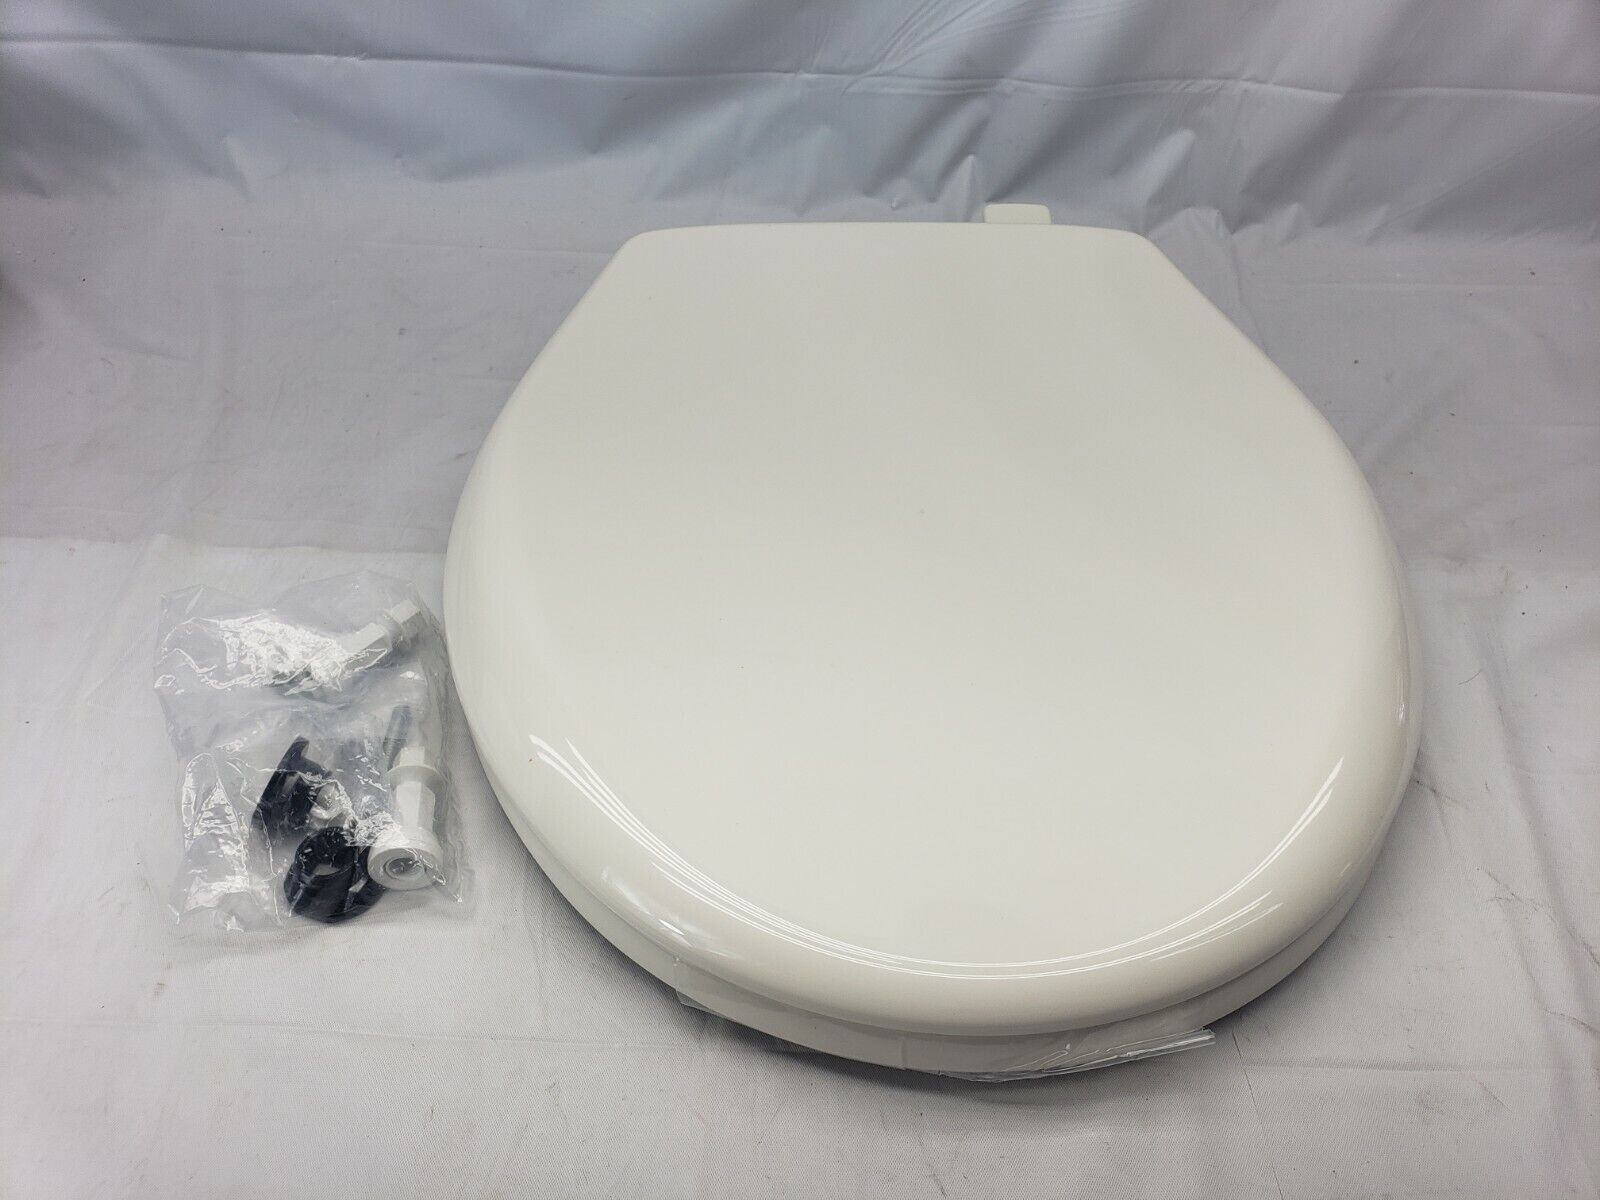 Church Plastic Round Slow-Close Toilet Seat Biscuit 7202SLOW